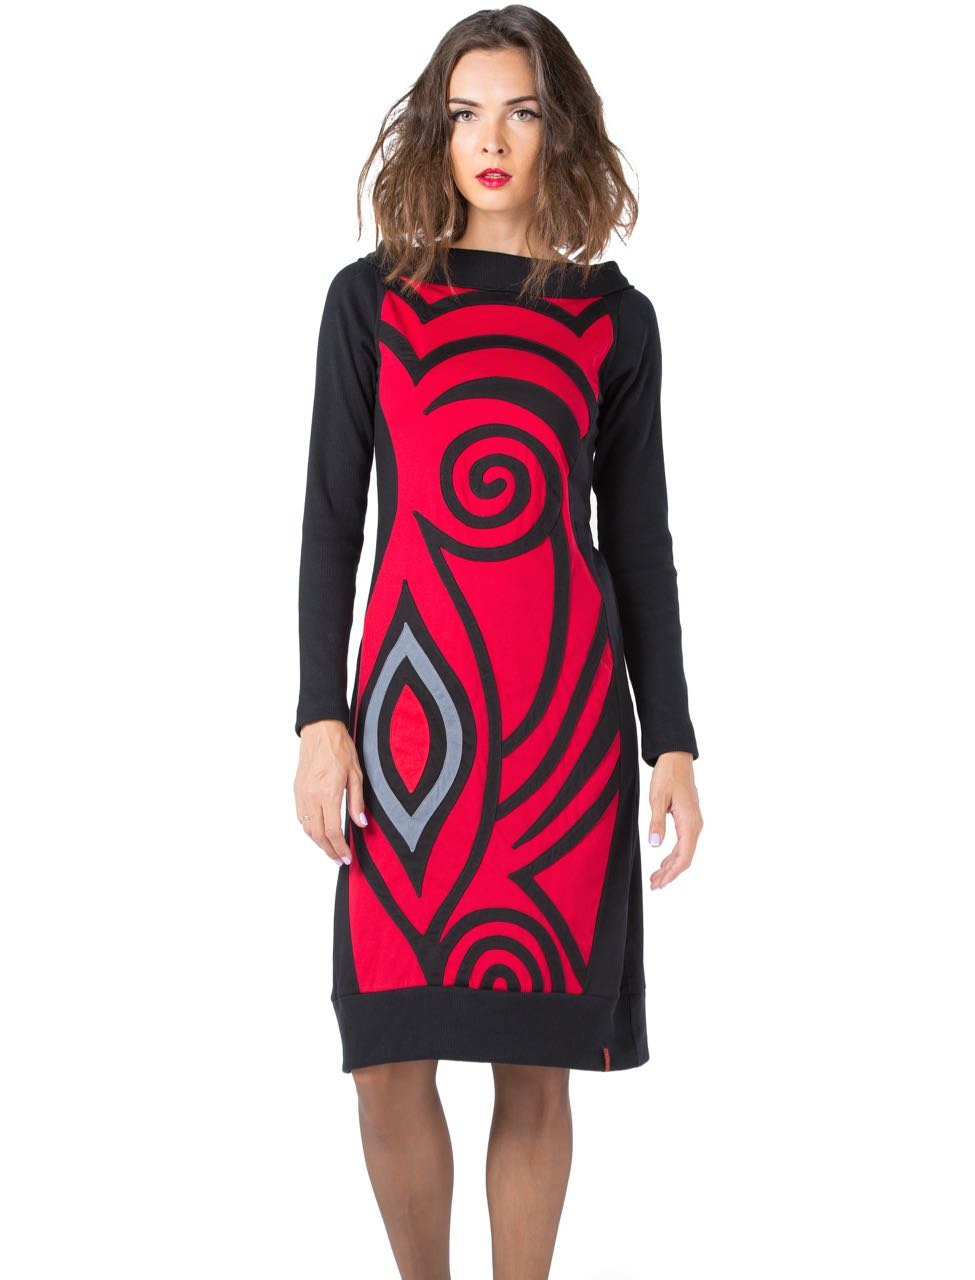 Pygmees Dress Psyche, Black Red